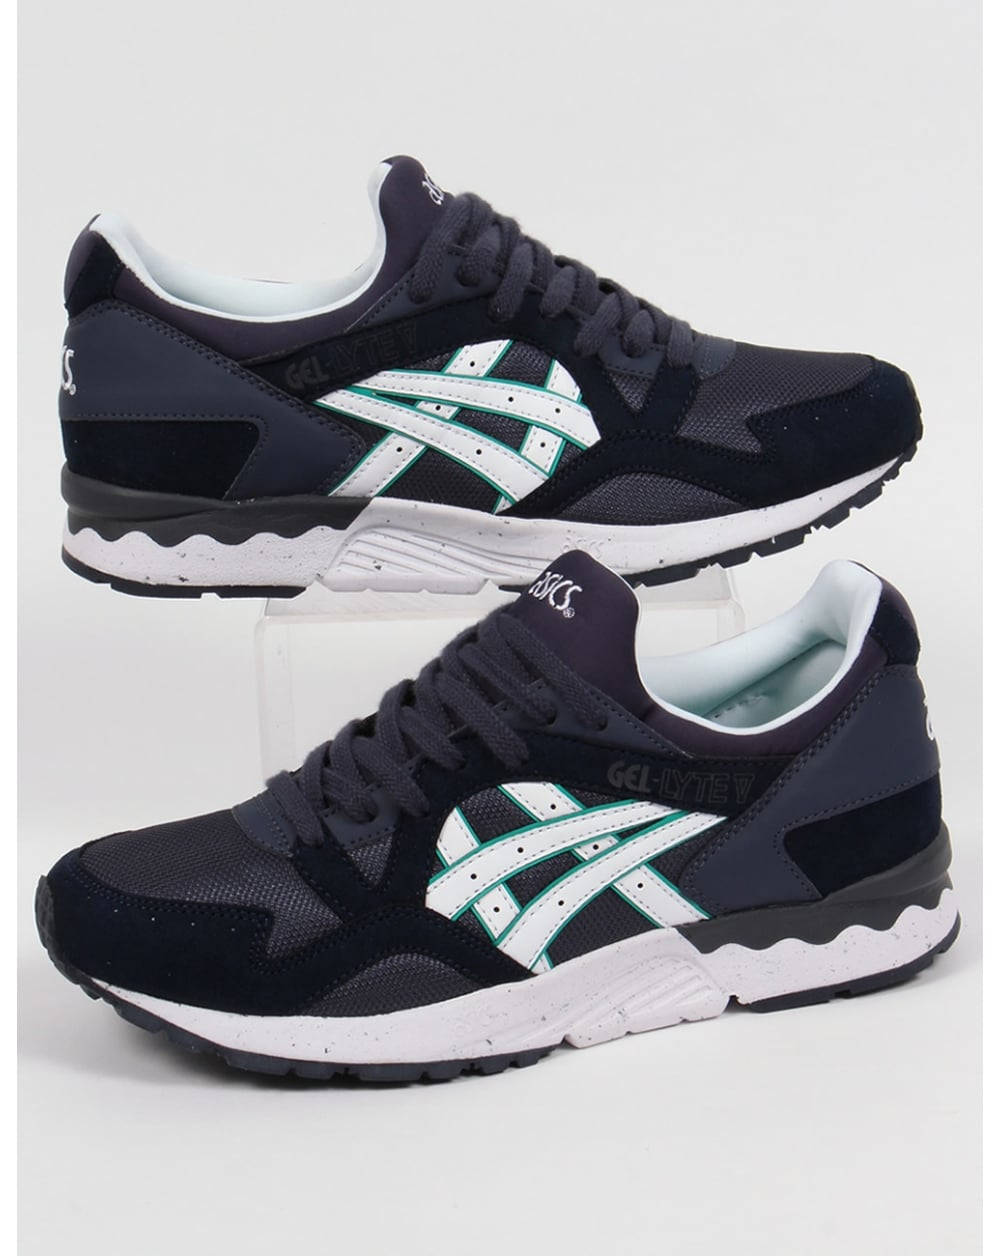 asics gel lyte v trainers indian ink white 5 shoes runners sneakers. Black Bedroom Furniture Sets. Home Design Ideas